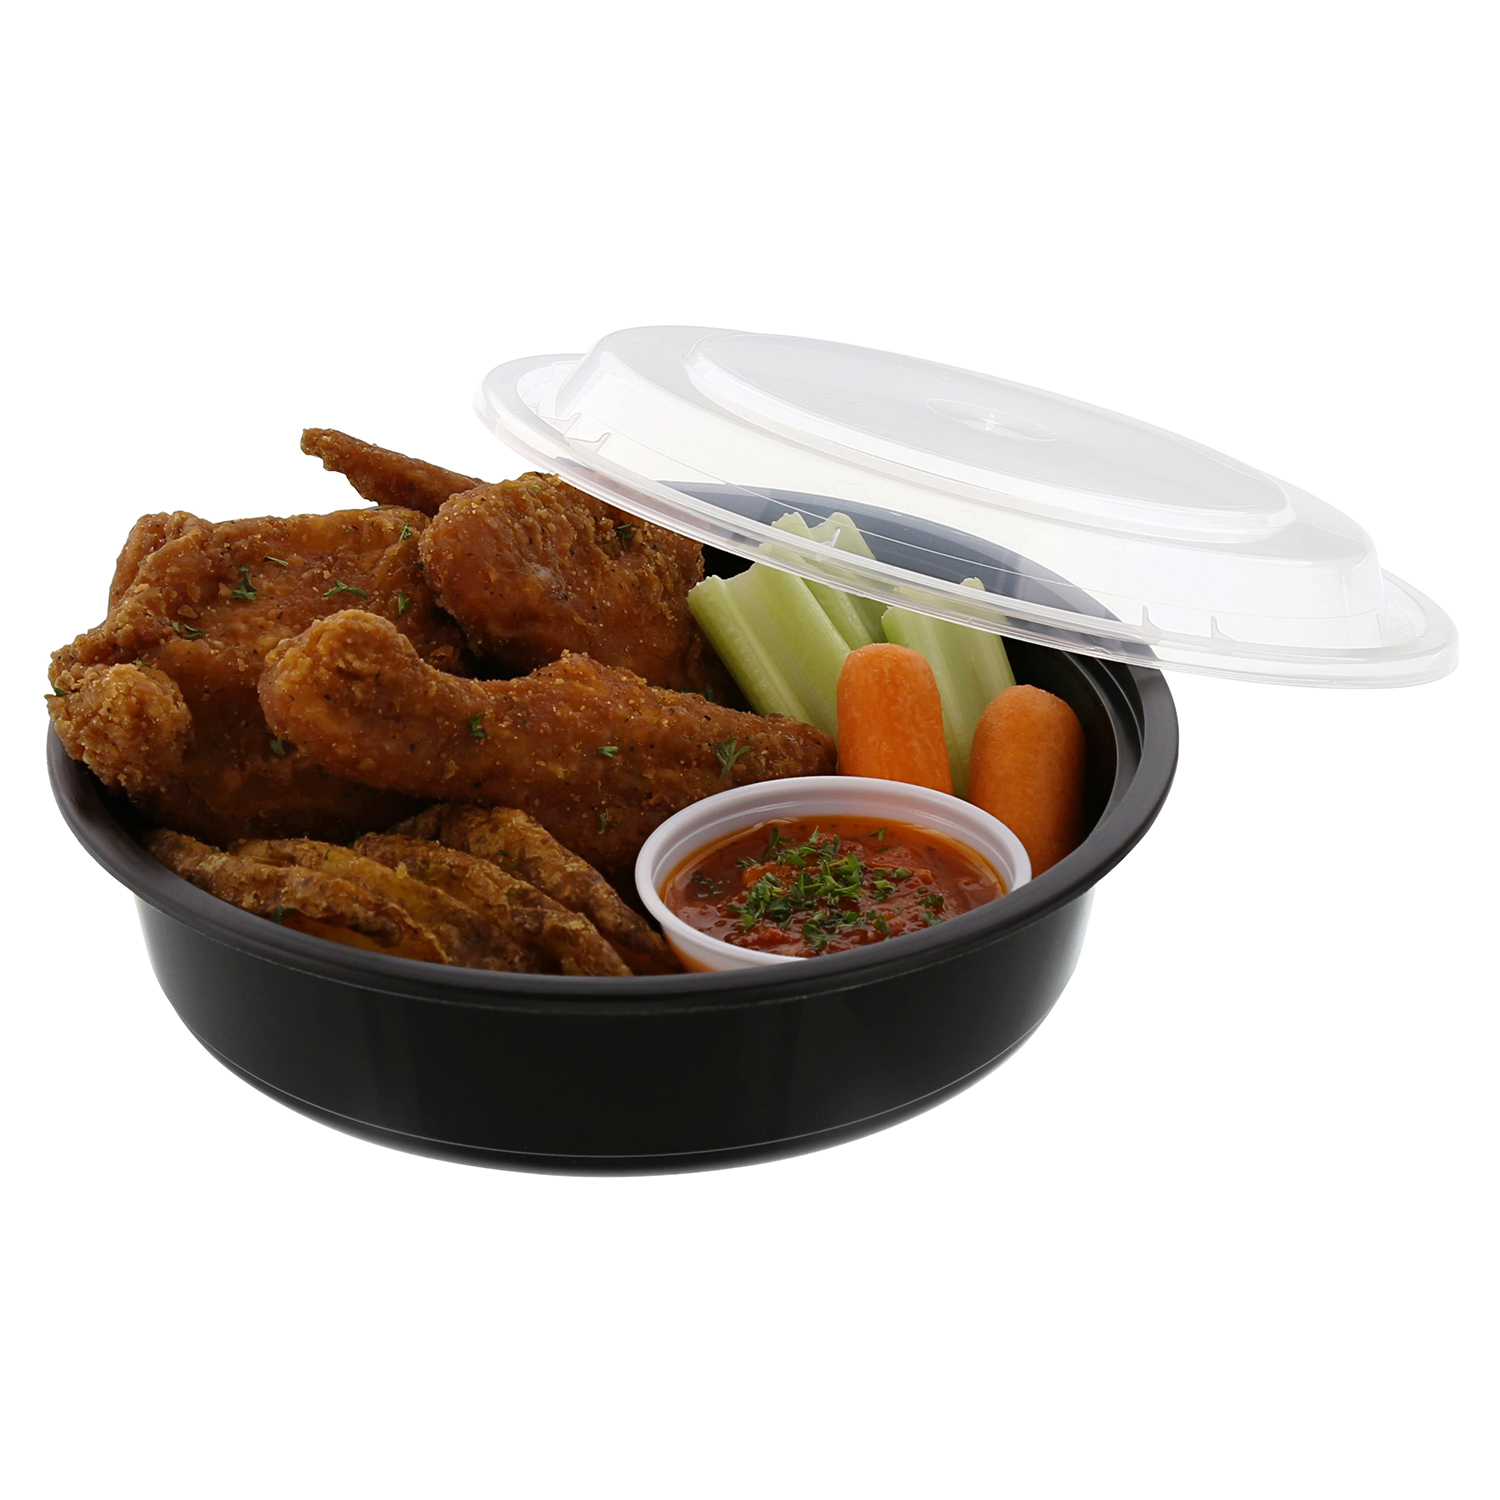 "Tripak Premium 7"" Round Black Plastic Container with Lid,..."